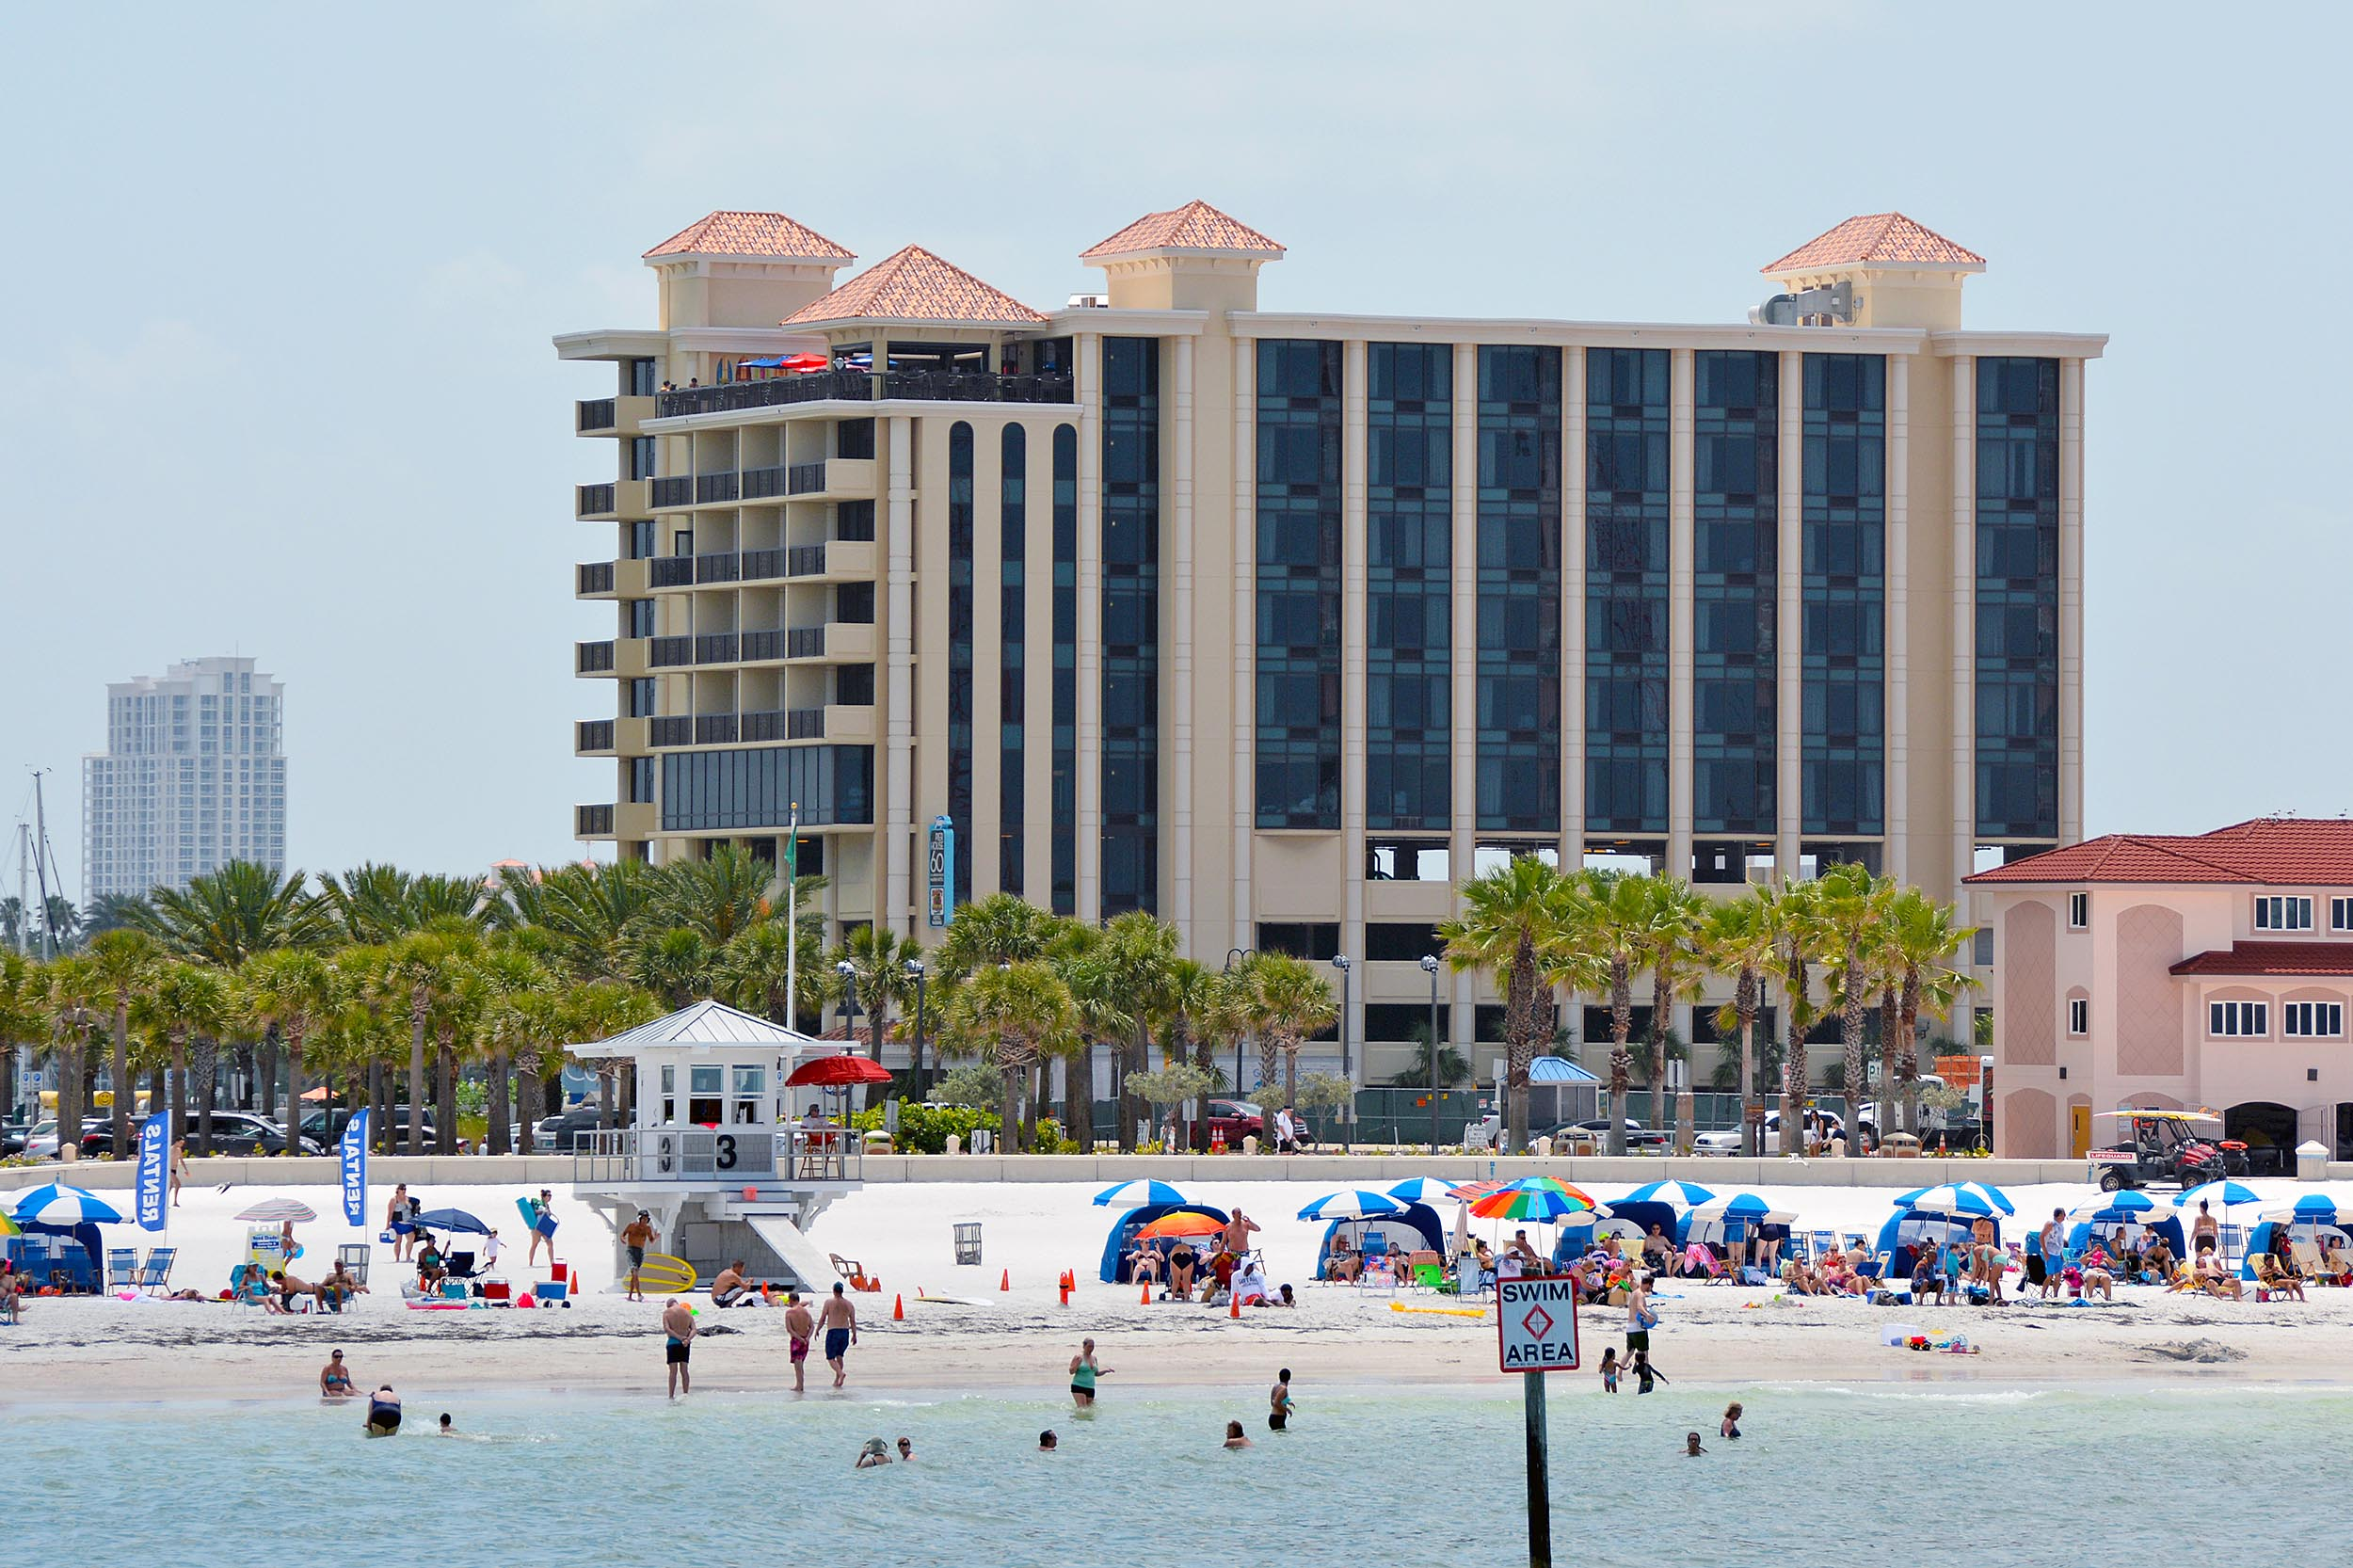 Pier House 60 Marina Hotel Clearwater beach Florida